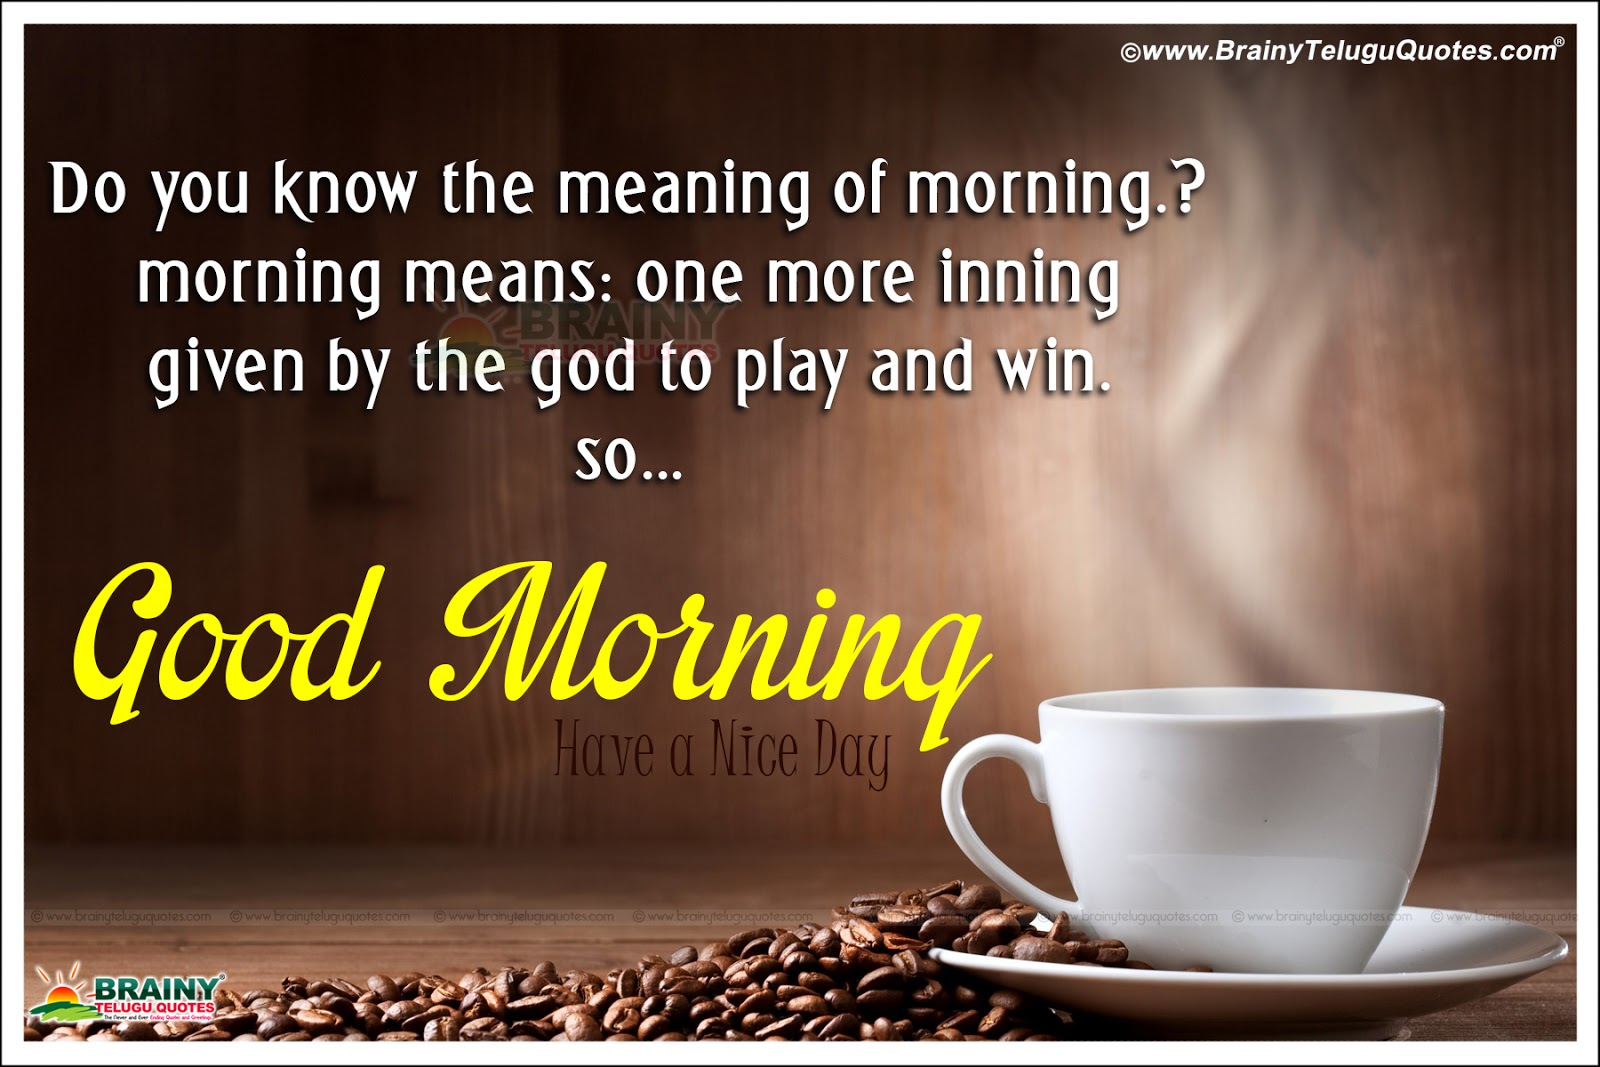 Good Morning Messages French : Inspirational good morning messages motivations wallpapers